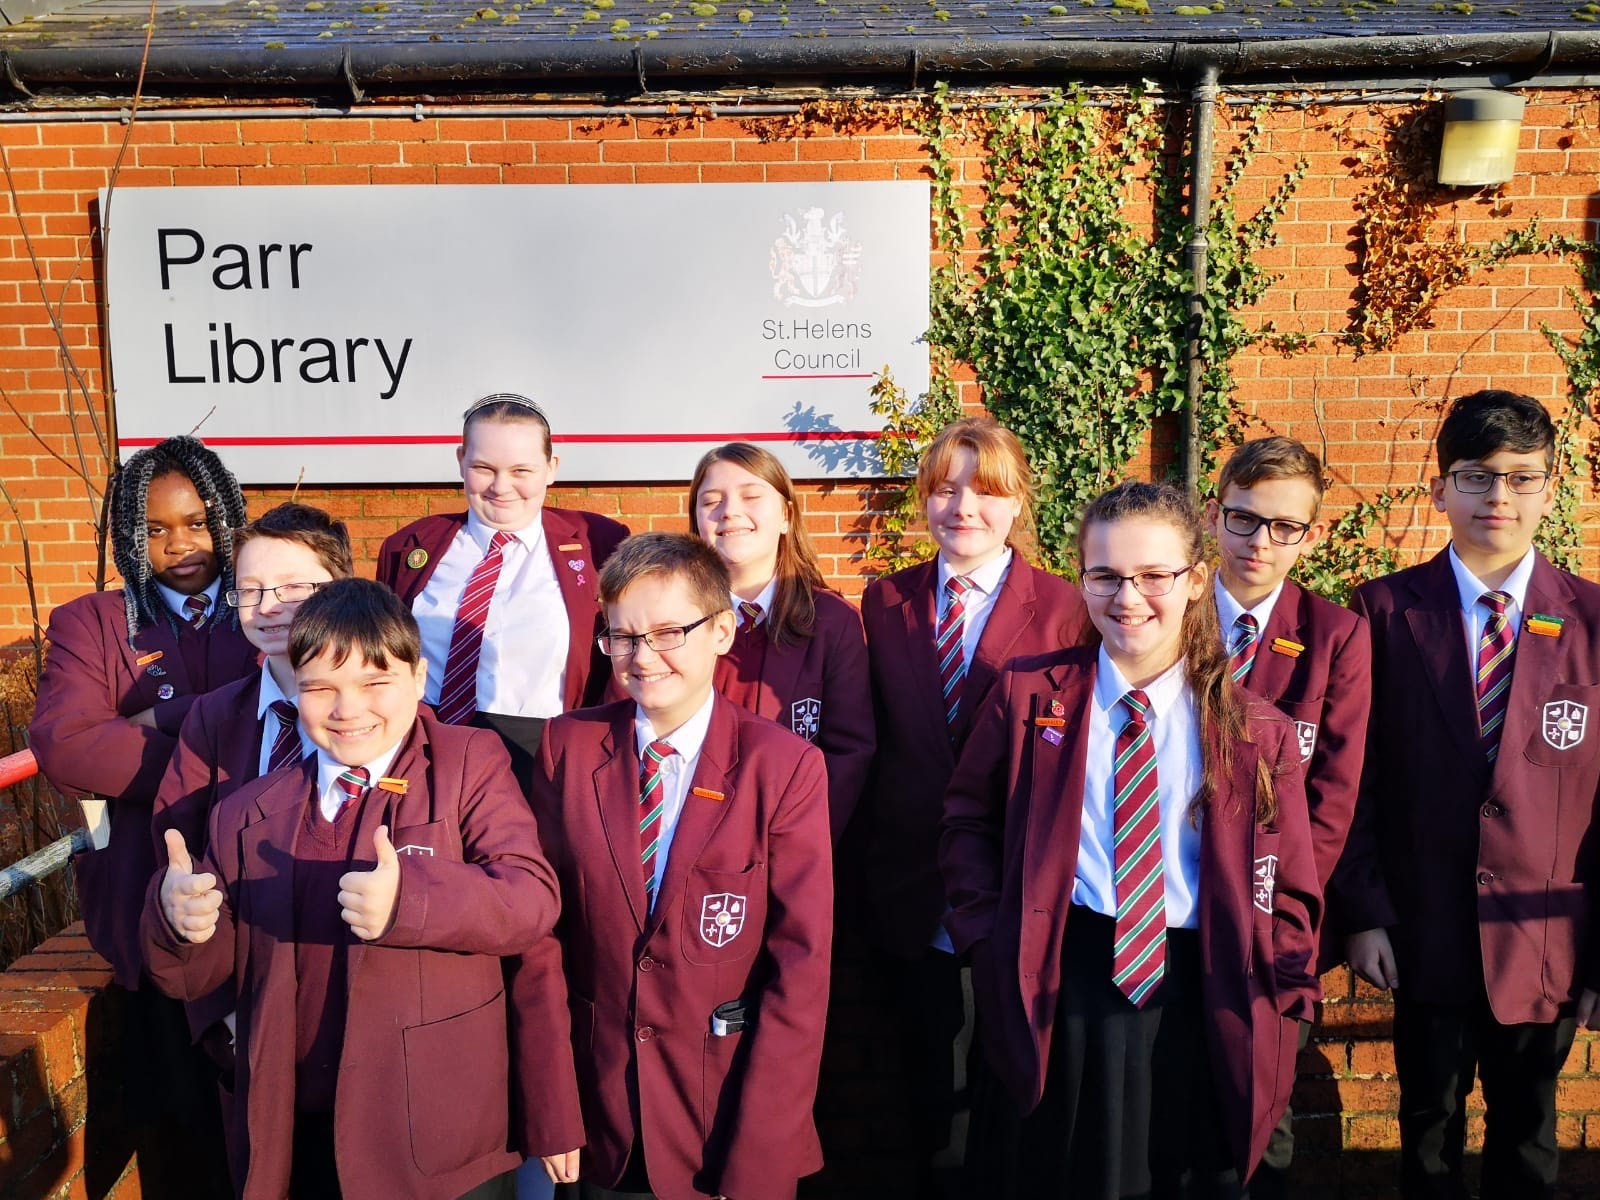 Our Library Ambassadors after their trip to Parr Library.